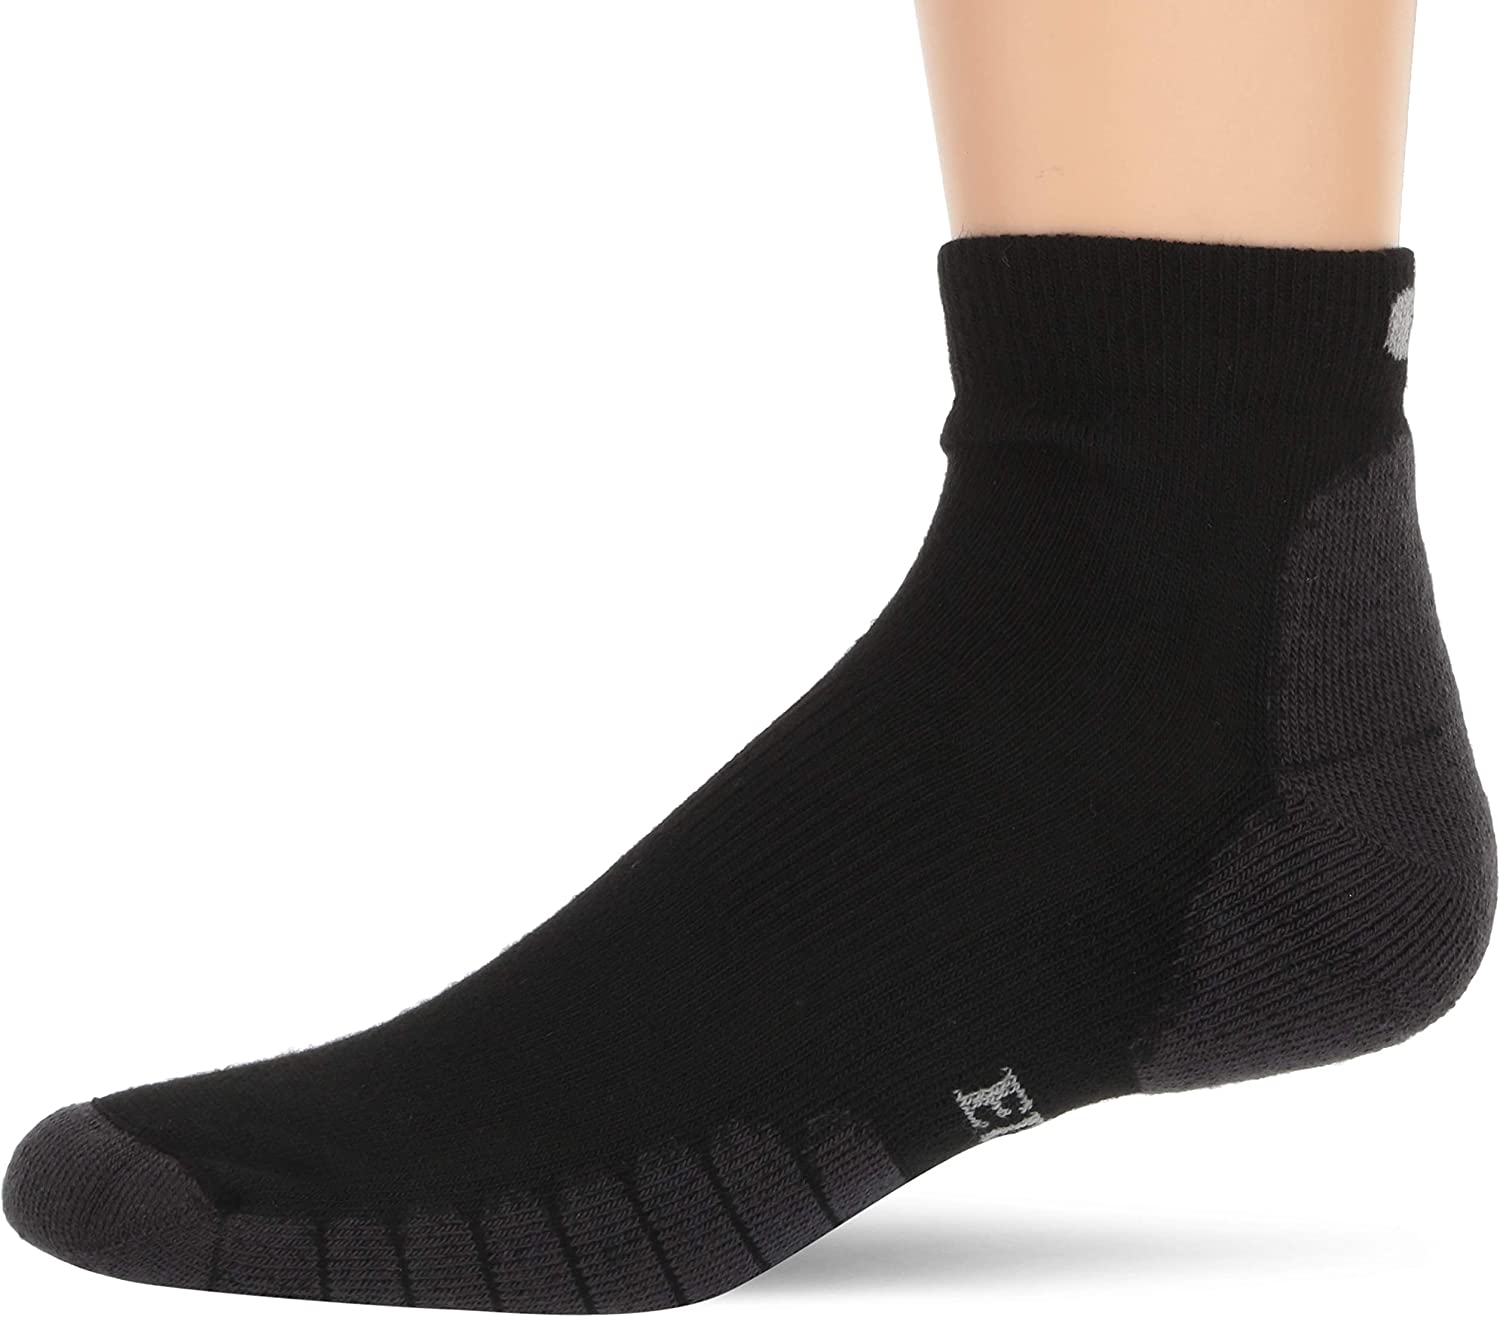 Eurosock Sport Specific Athletic Socks, Snug Fit & Feel, Extra Smooth Toe Seams, Padded, Arch Support - 3812